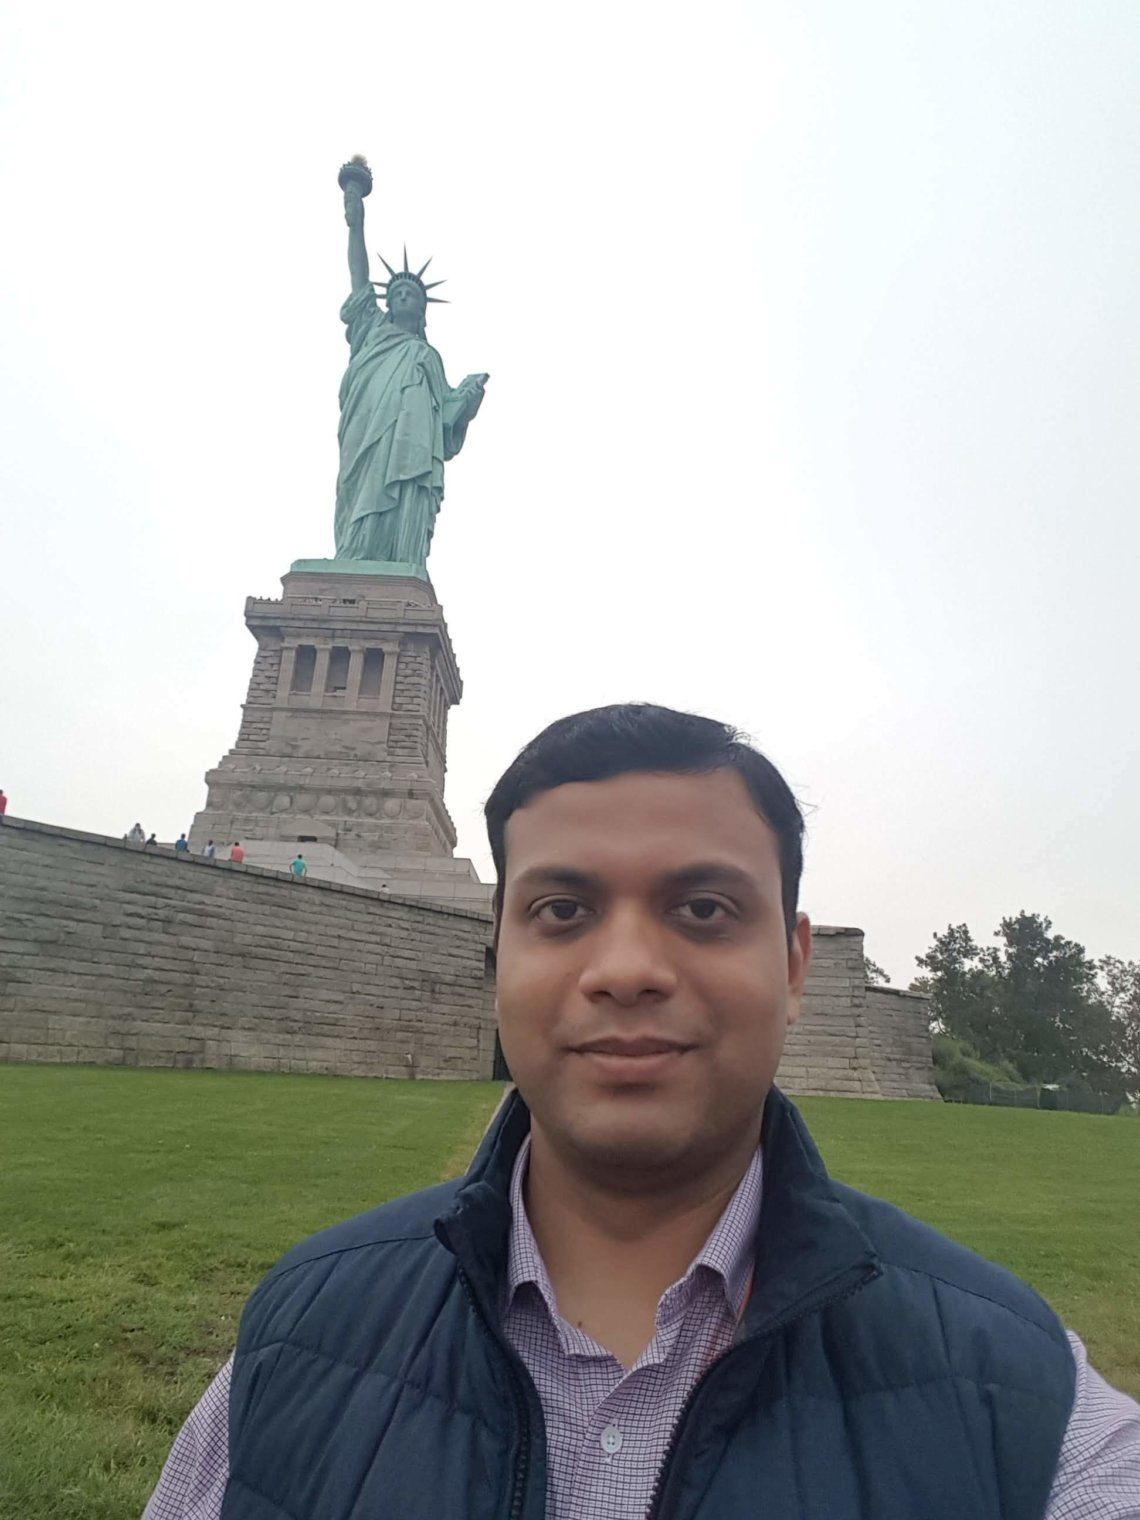 Me and Lady Liberty